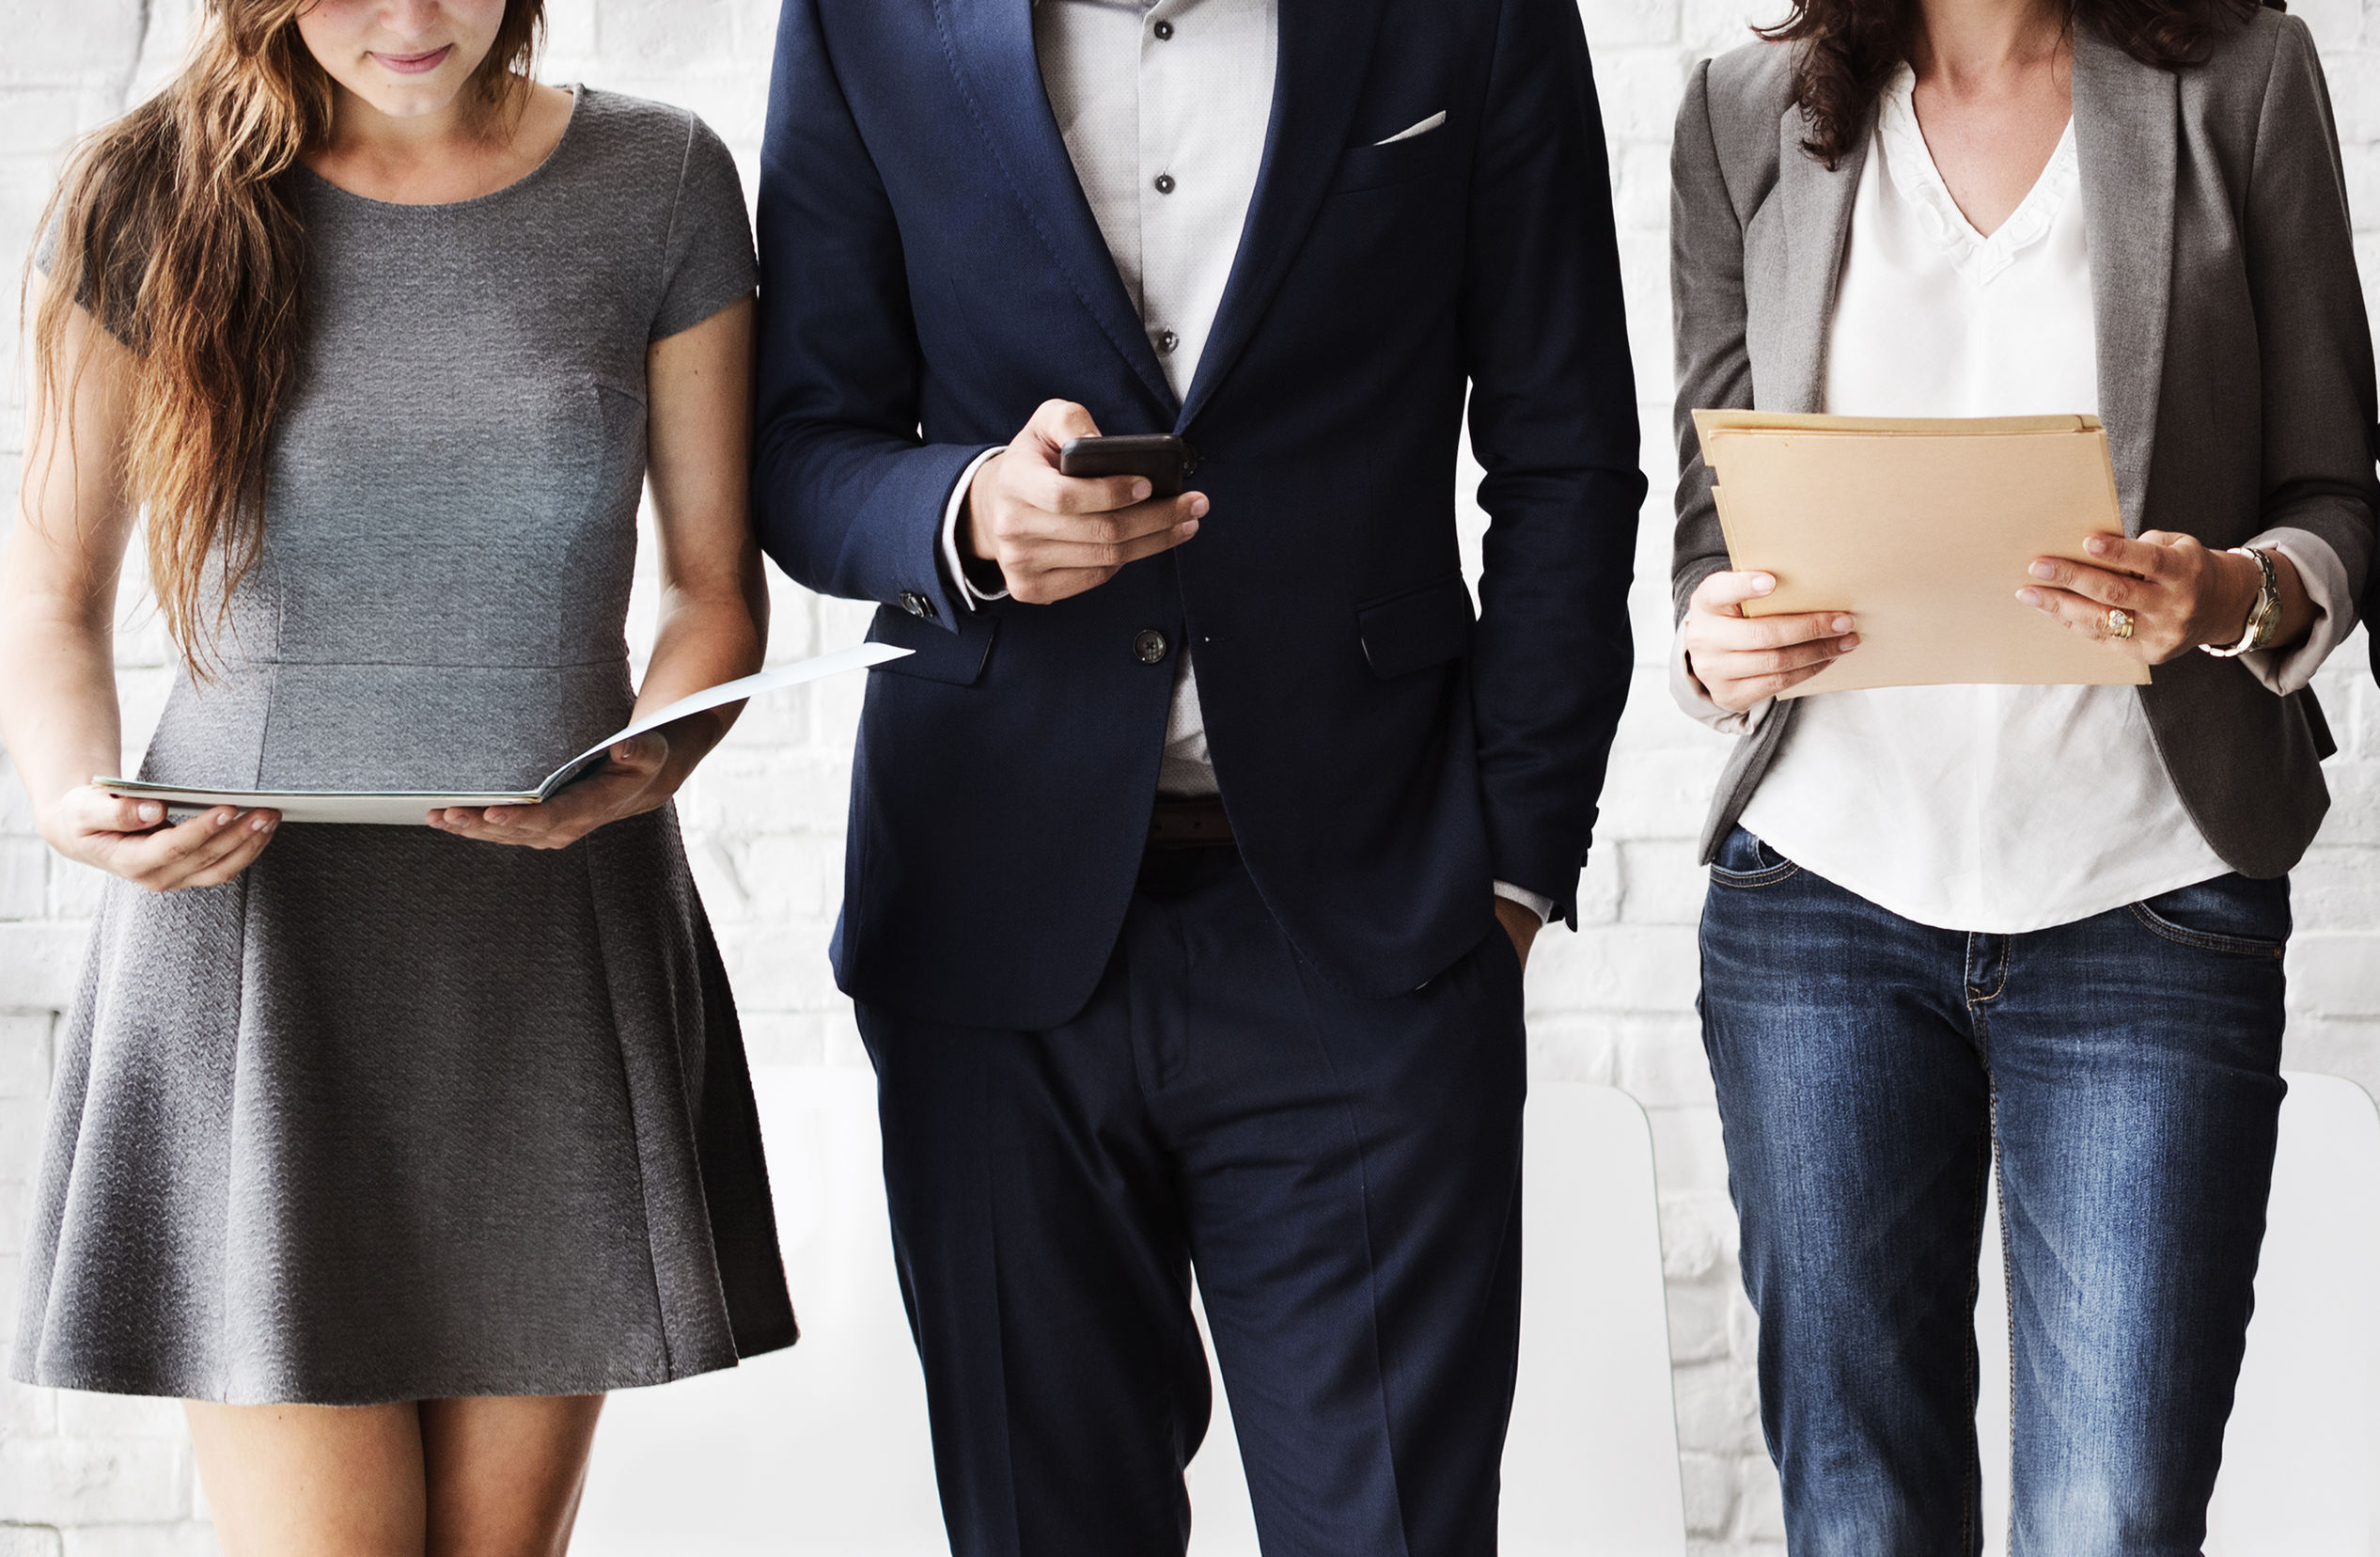 Group Texting As Recruitment Channel